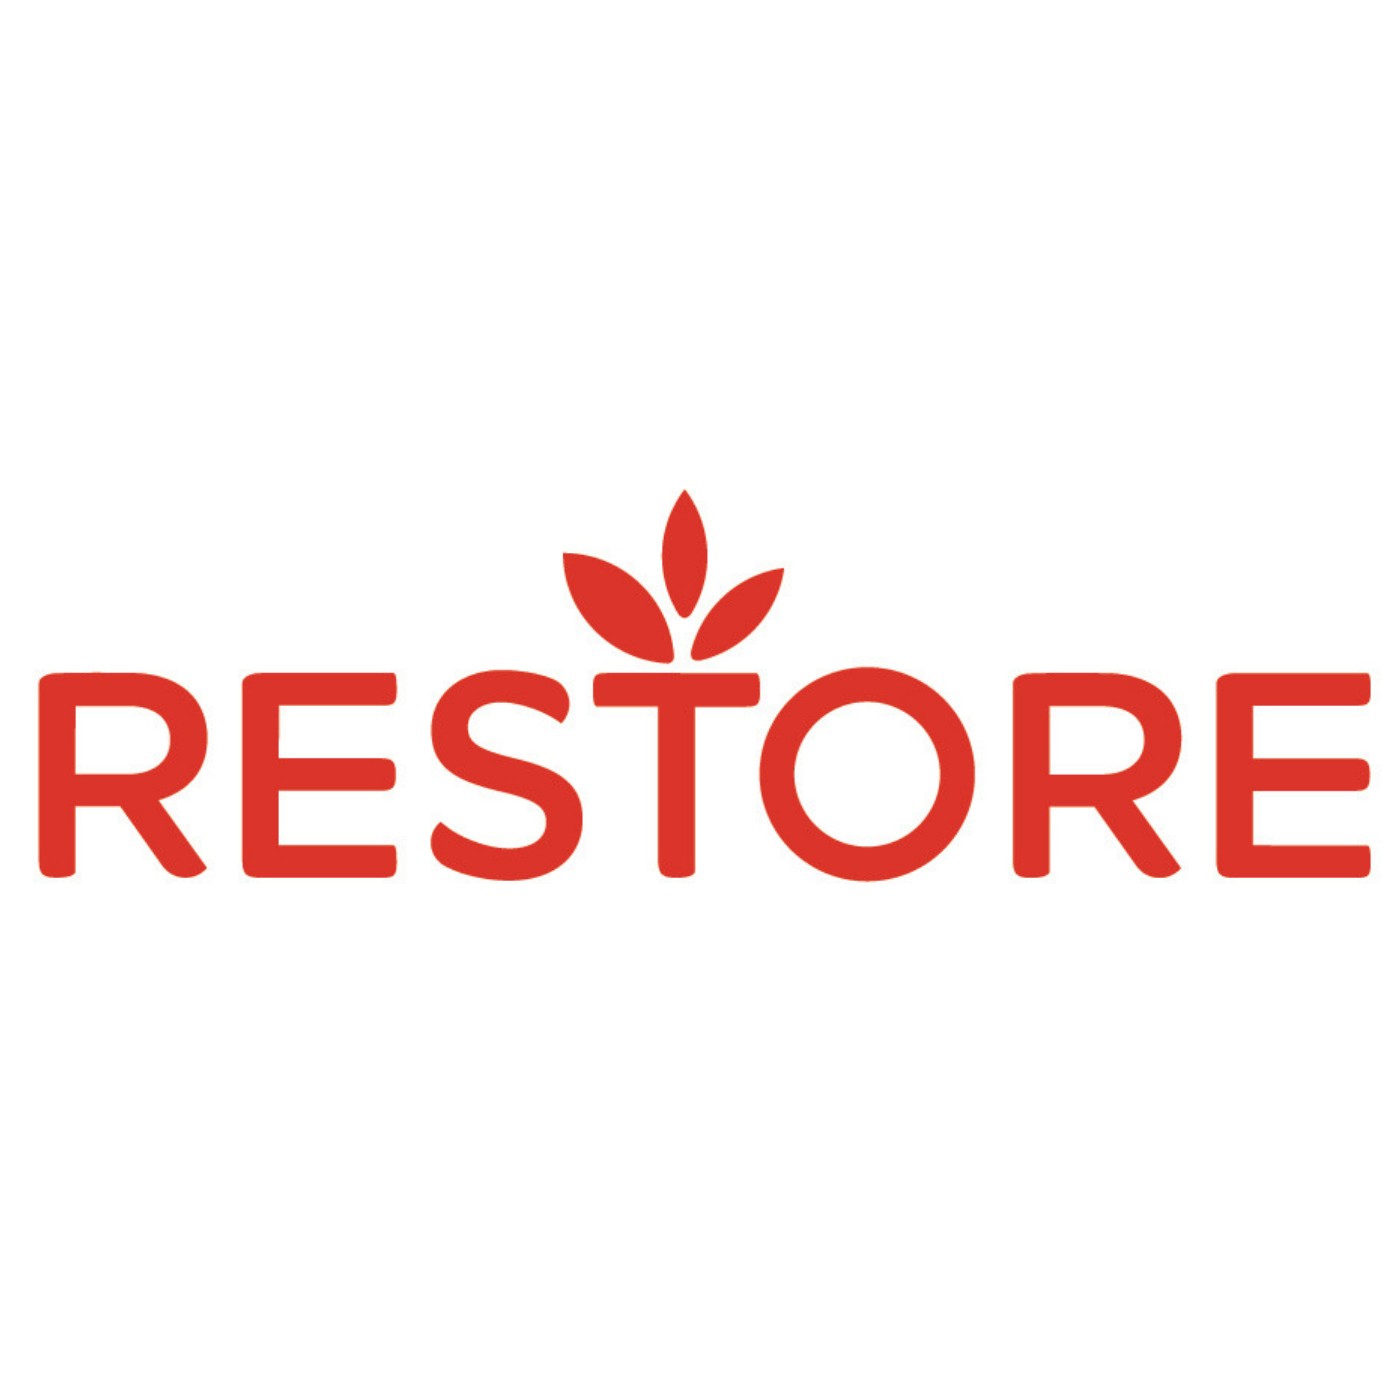 RestoreNYC  wants to end sex trafficking in New York and restore the well-being and independence of foreign-national survivors.  We've given $5,138  to pay one month's rent + utilities for 2 survivors living in the Restore Safehome, plus ESL classes for 20 survivors, and 1 month of Metrocards for 10 survivors.  You can give here.